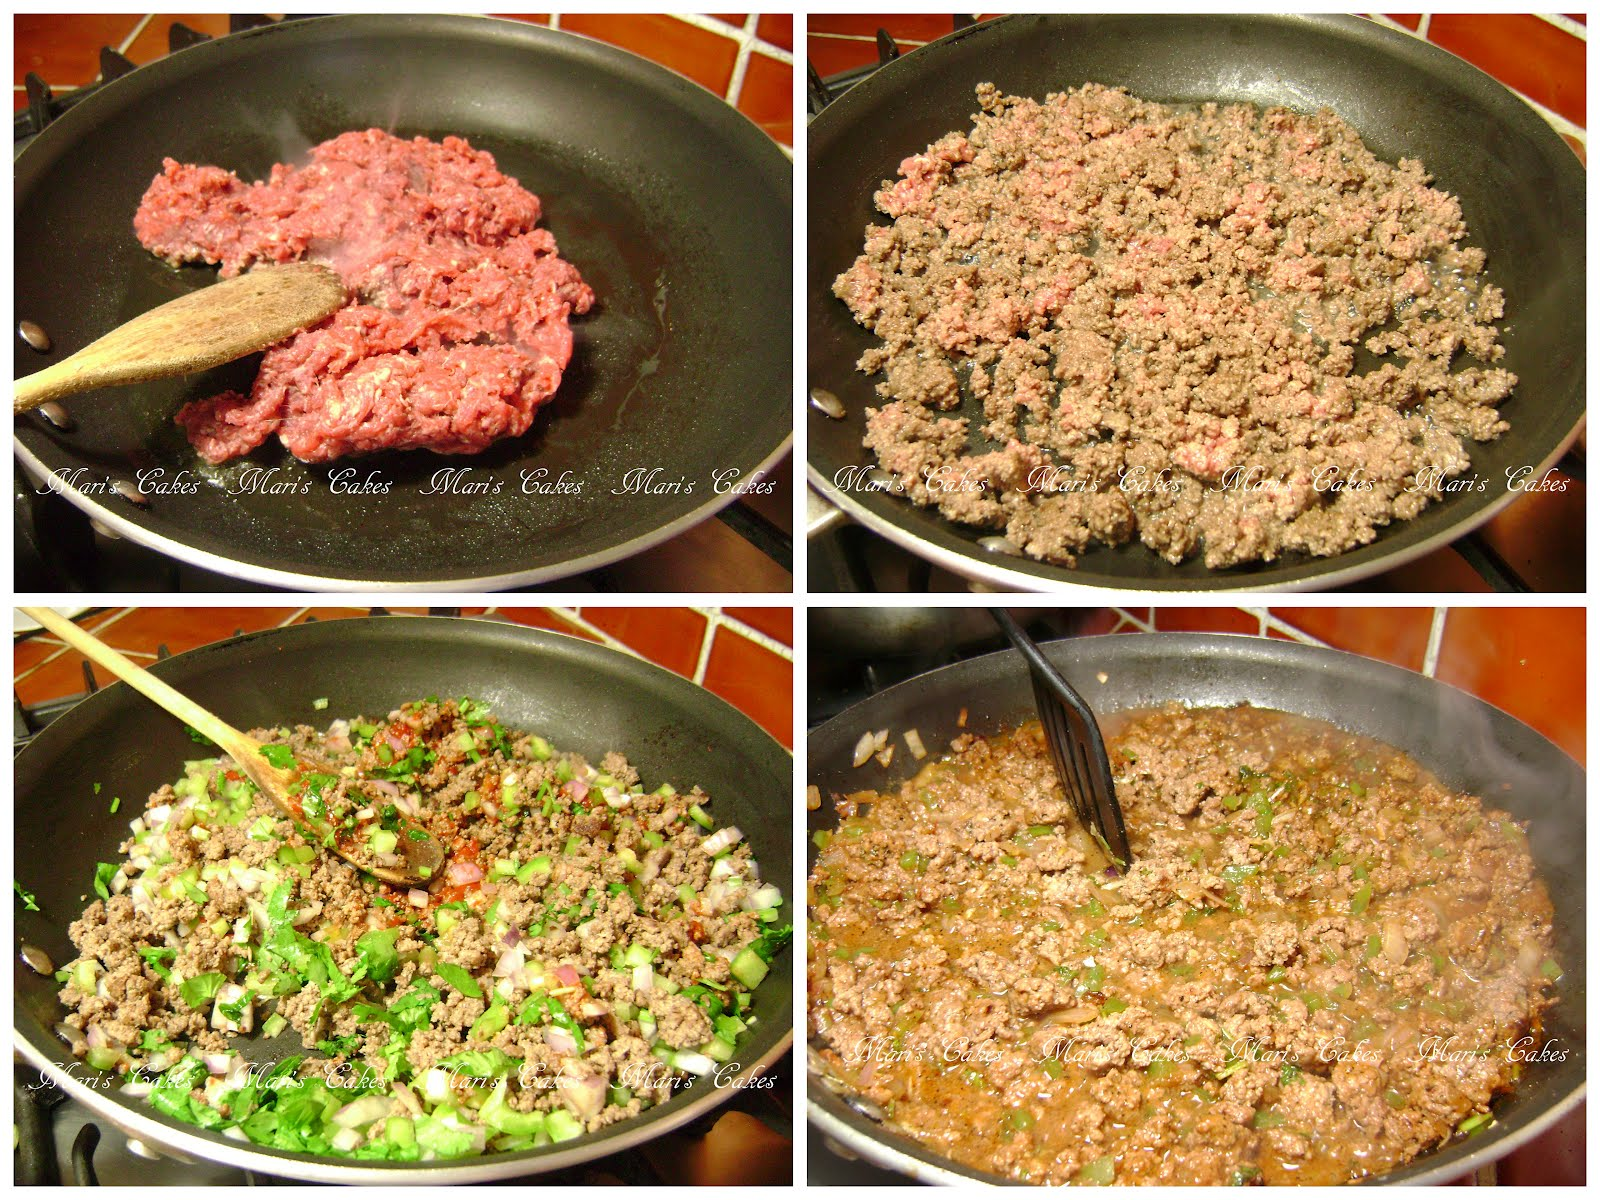 Ground beef picadillo de res mari 39 s cakes english - Que cocinar con carne picada ...